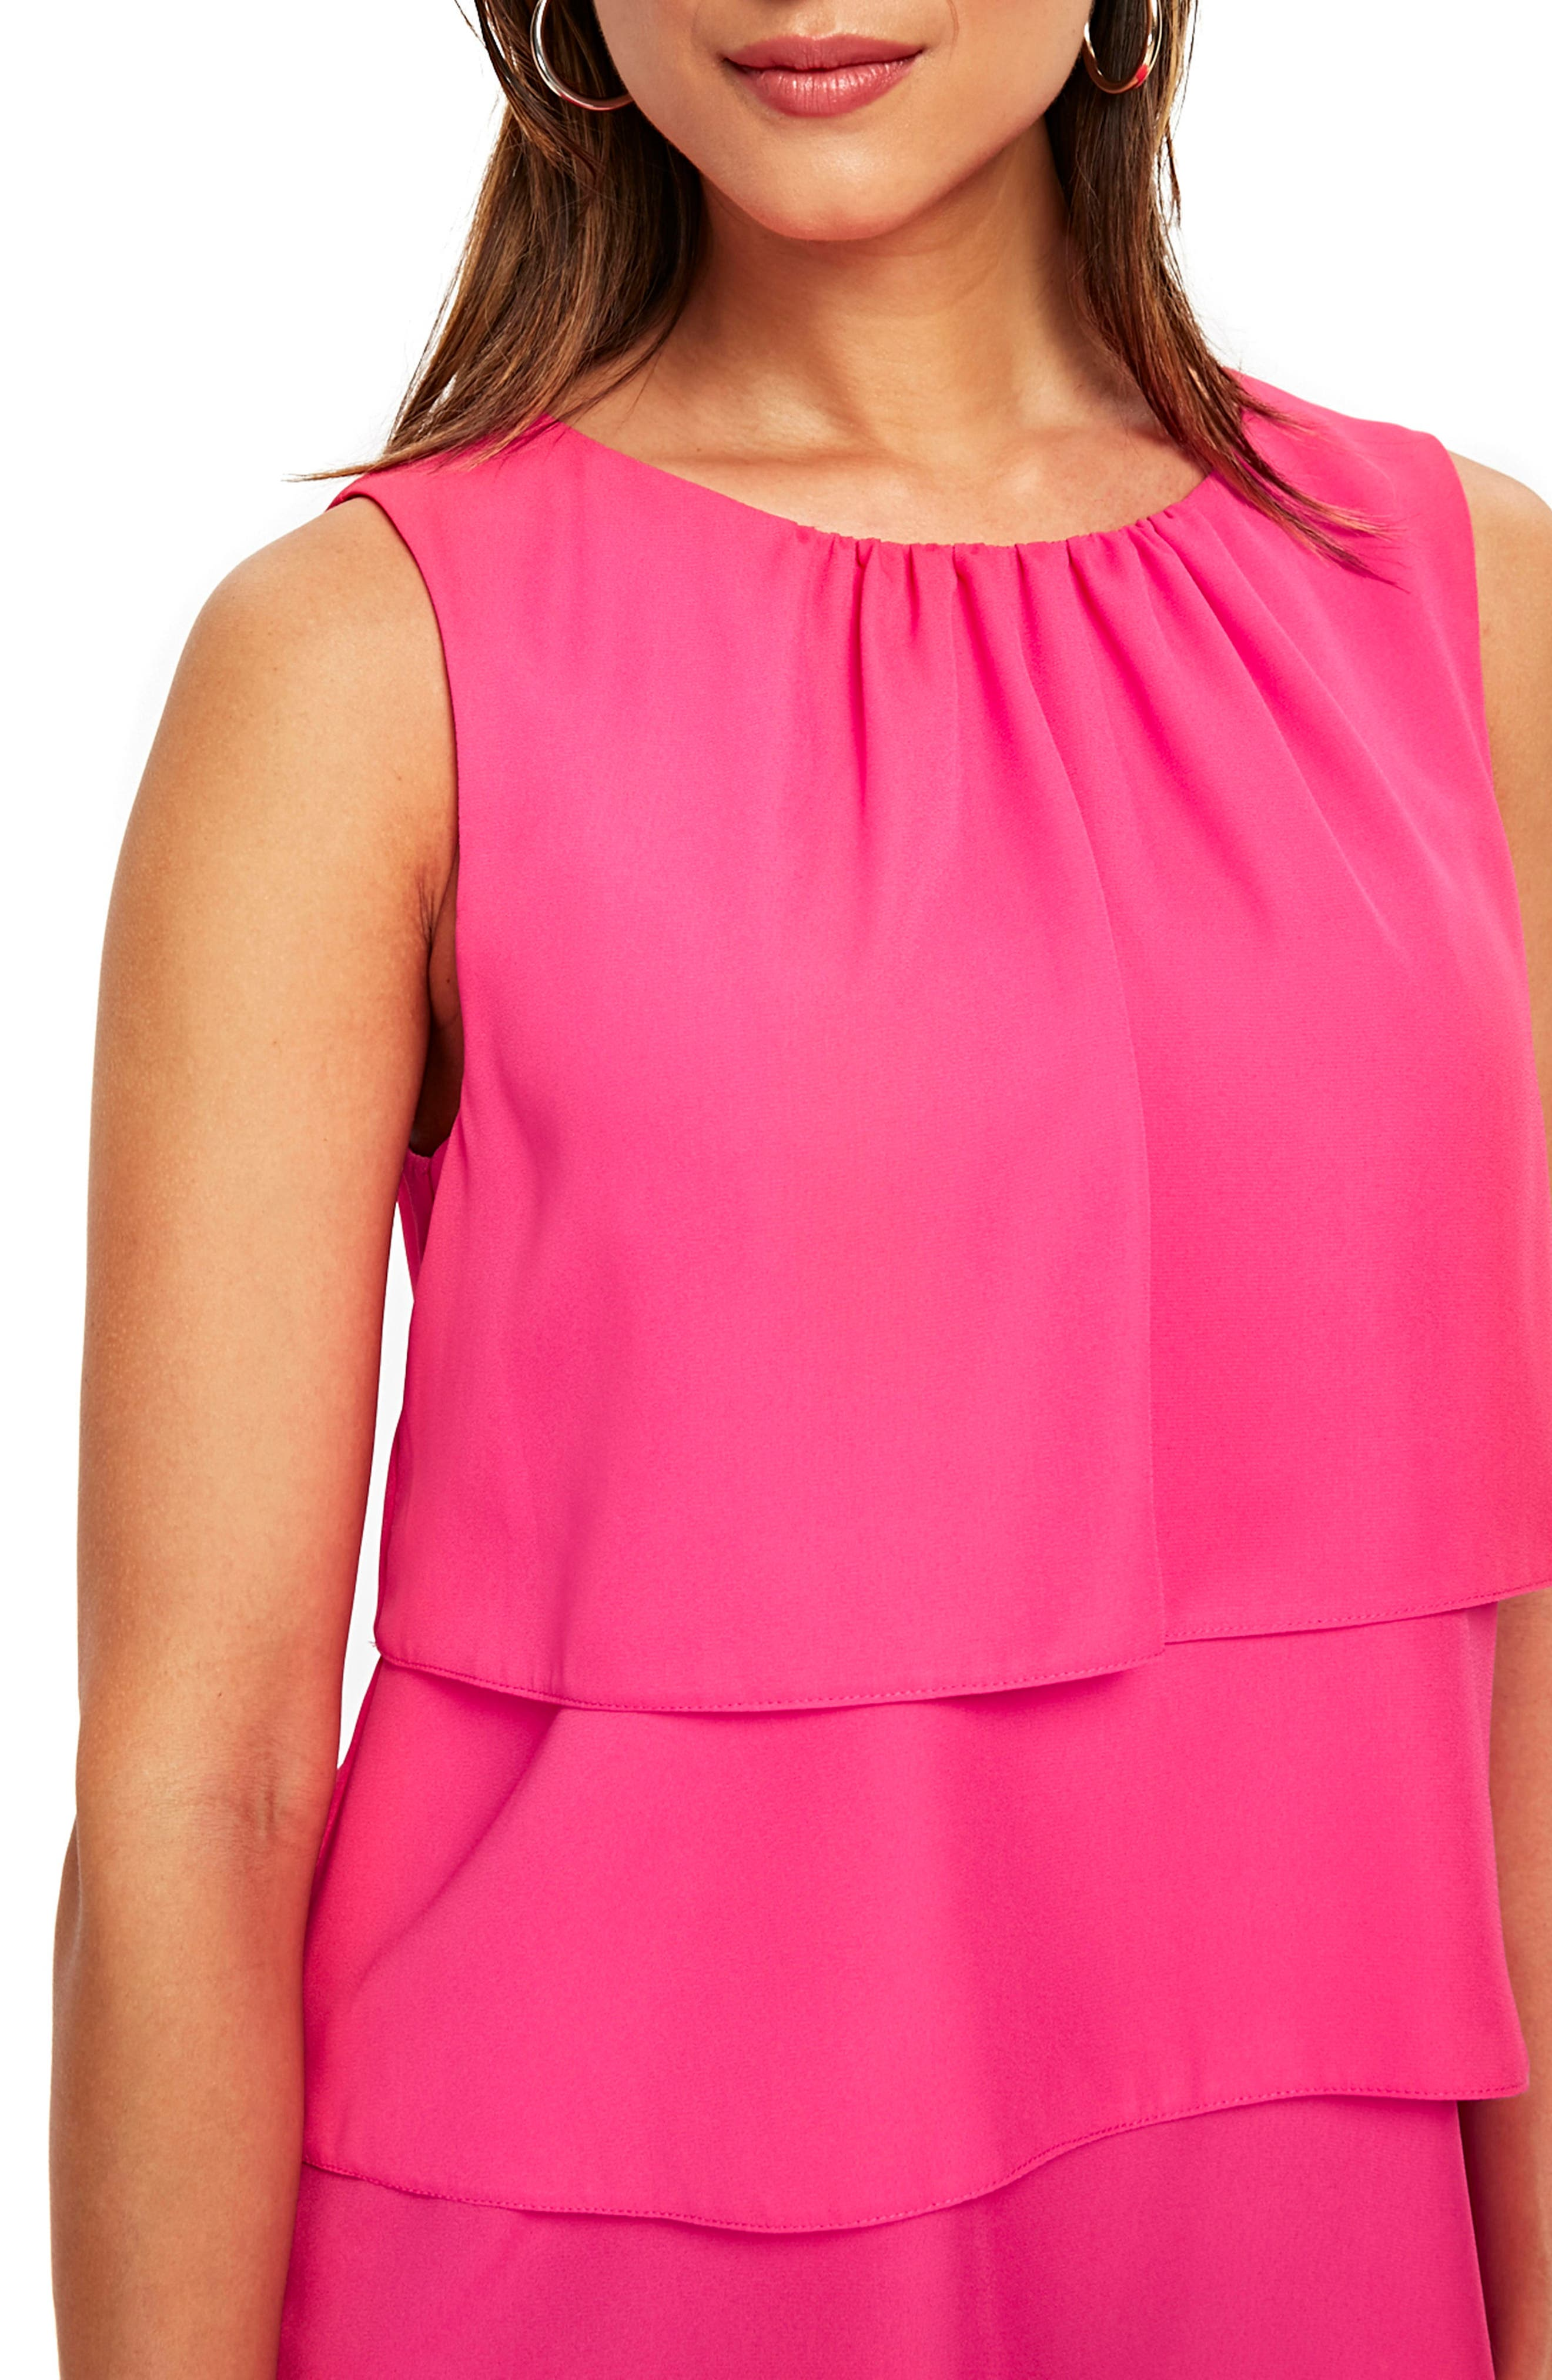 Tiered Sleeveless Top,                             Alternate thumbnail 3, color,                             650